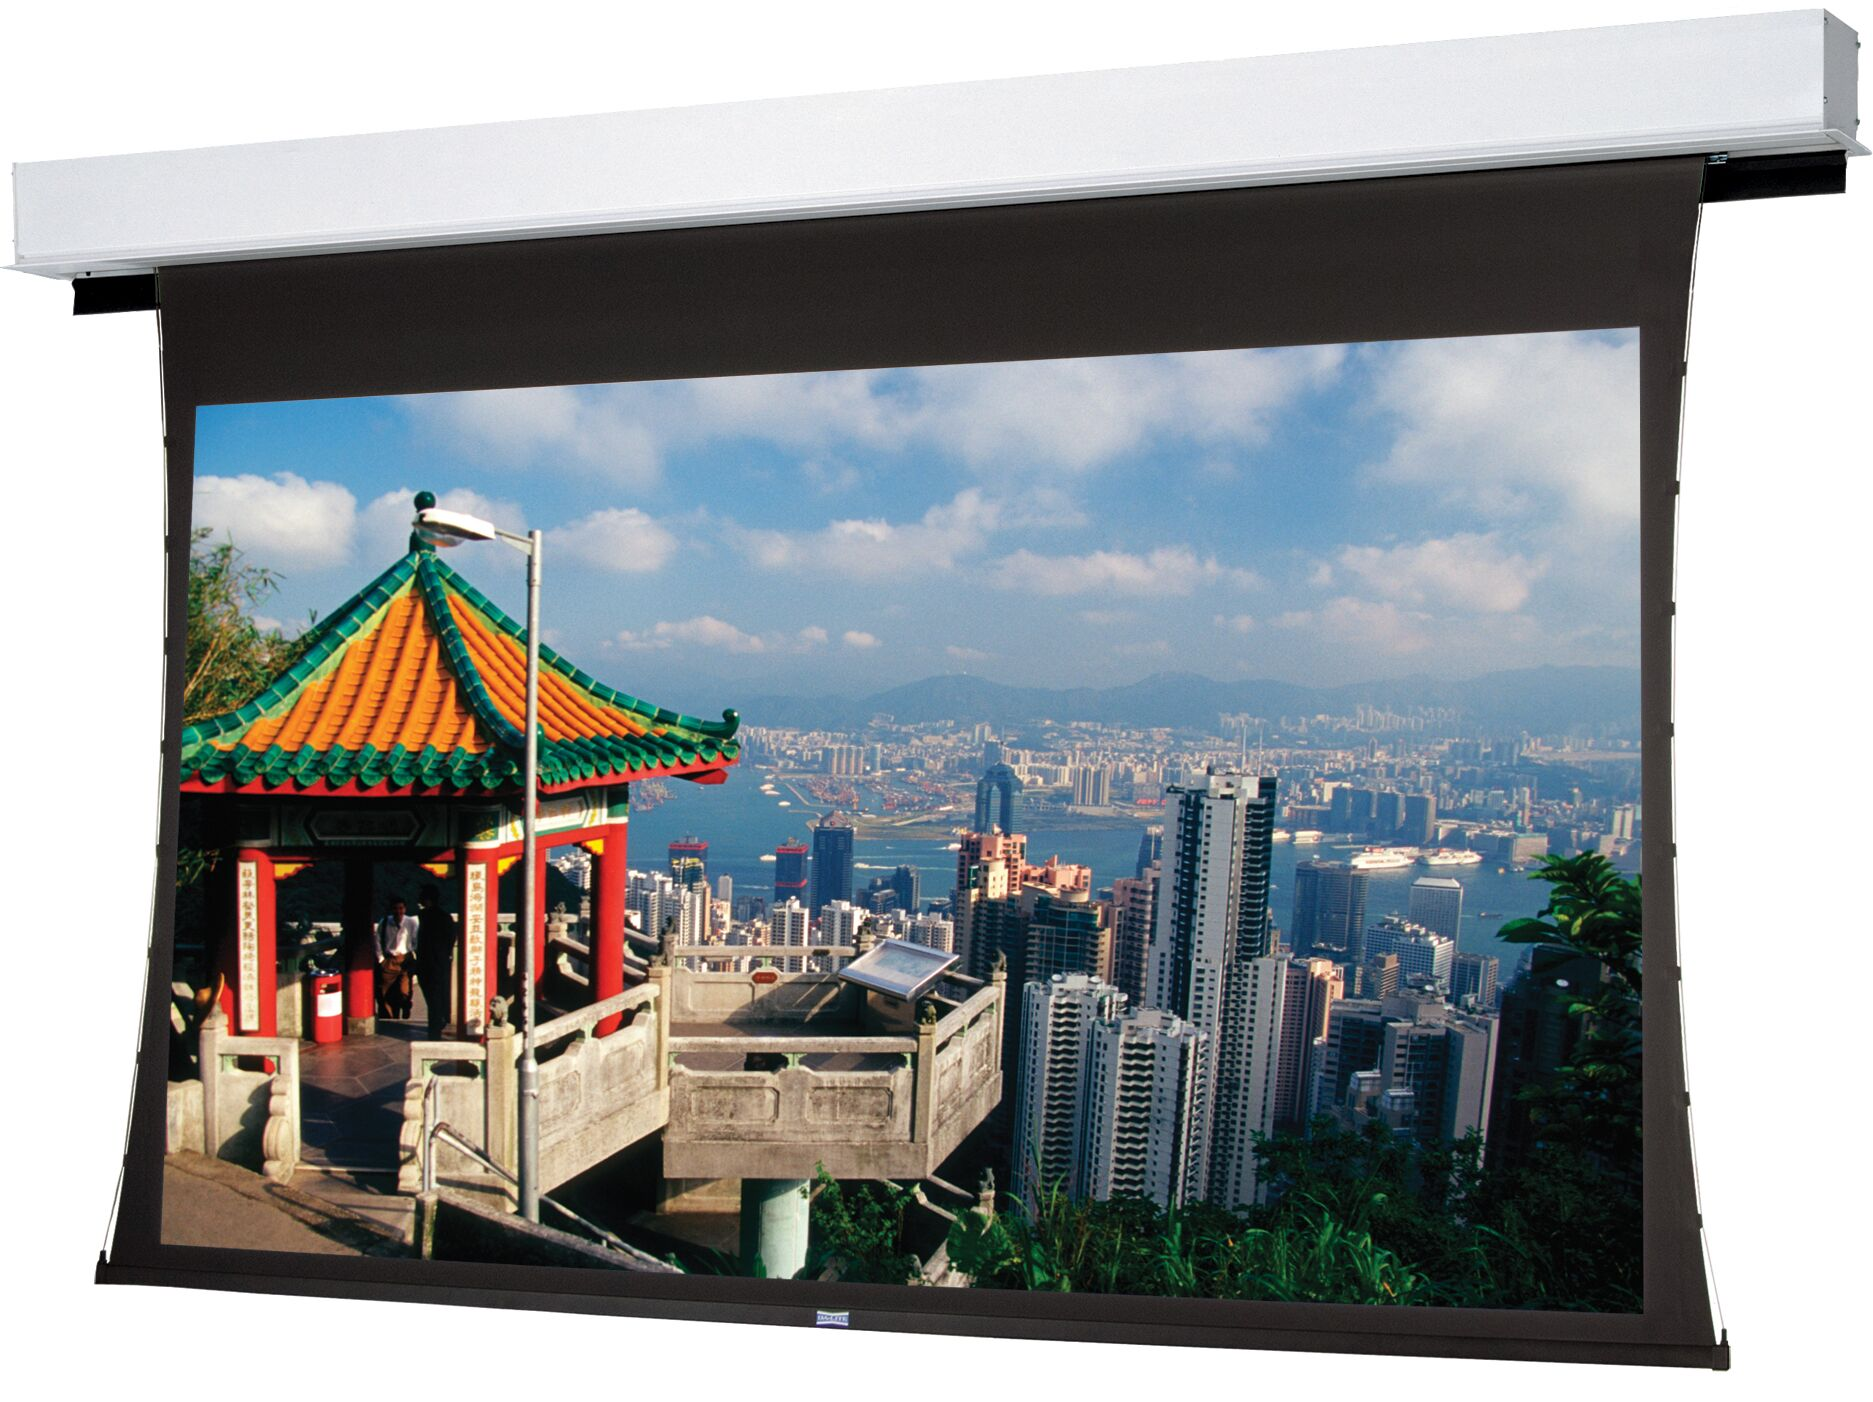 Tensioned Advantage Deluxe Electrol Electric Projection Screen Viewing Area: 65